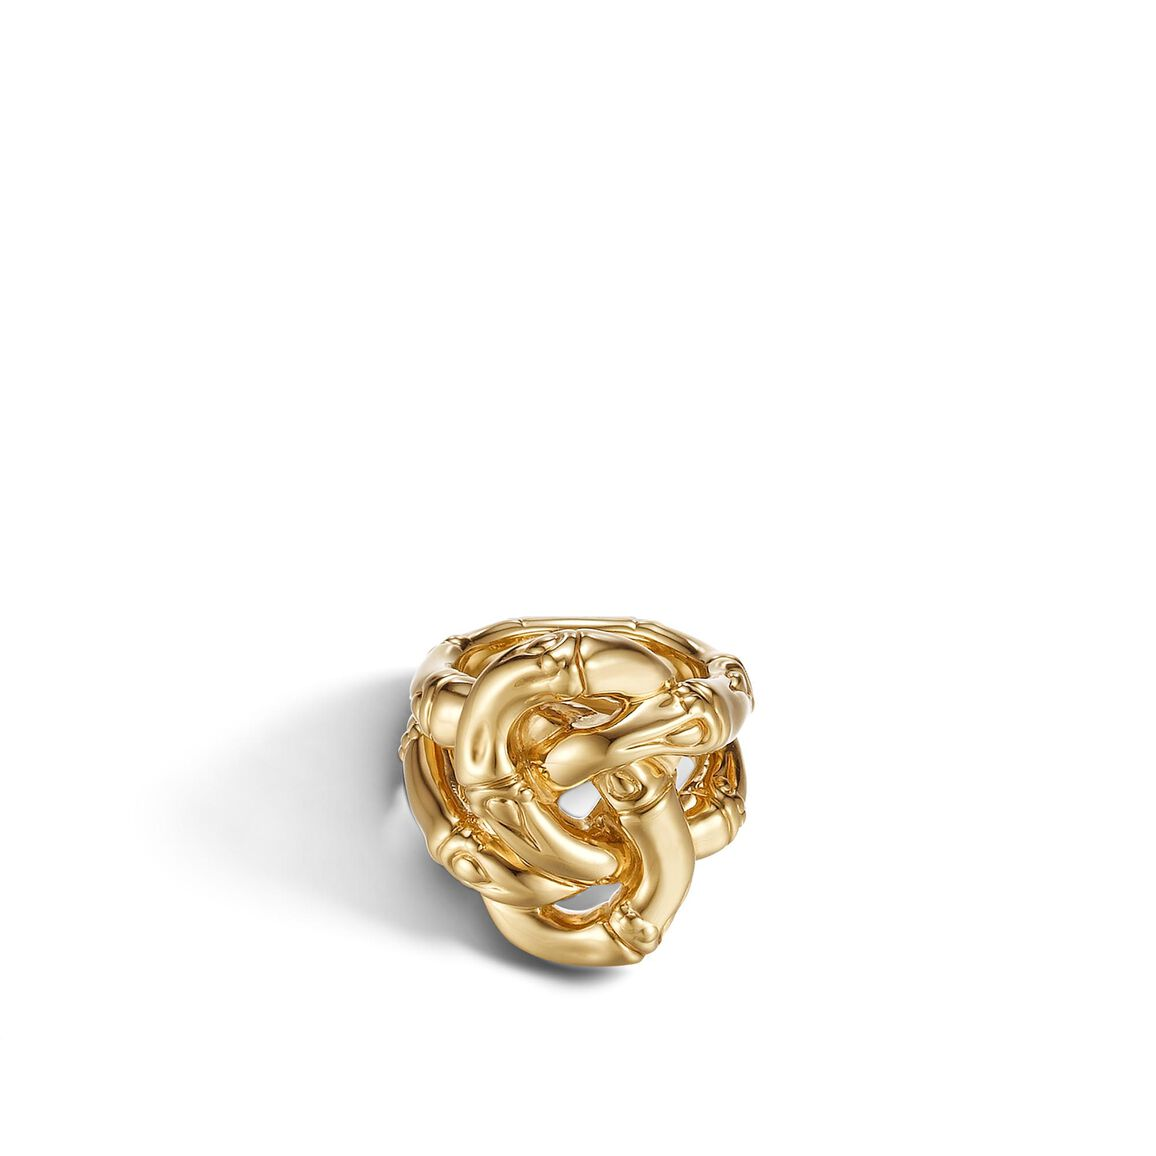 Bamboo Knot Ring in 18K Gold